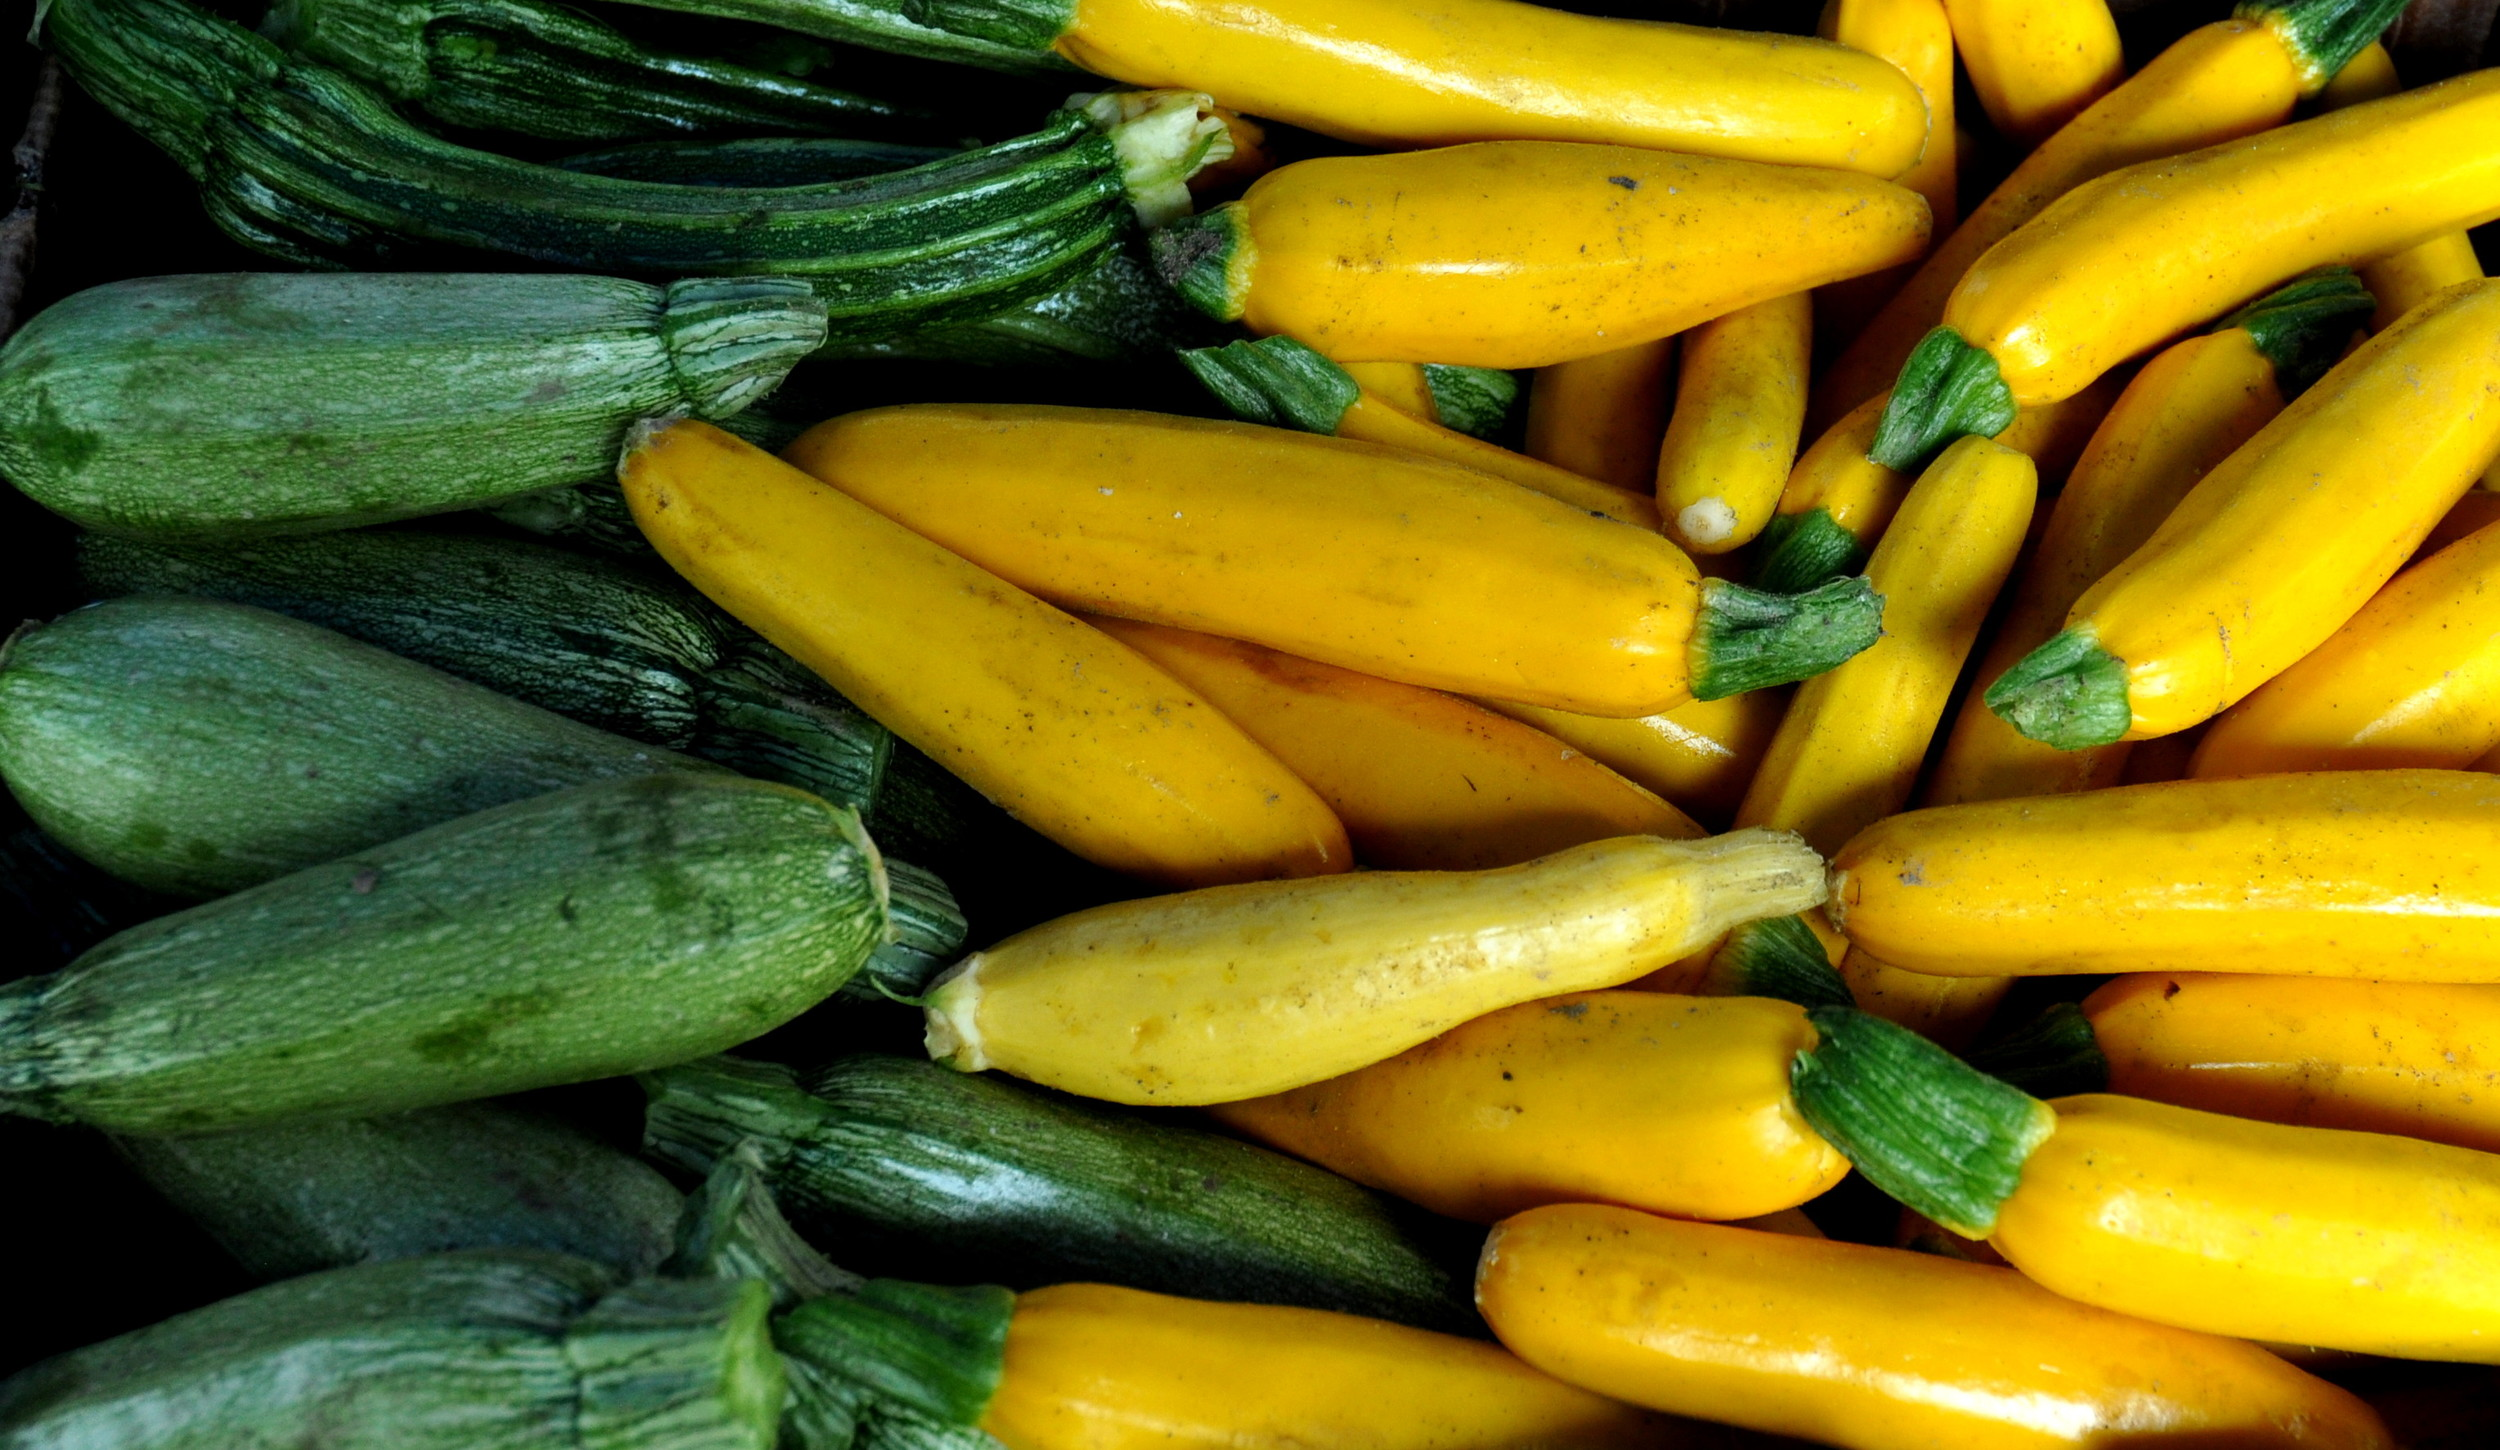 Summer squash from Alvarez Organic Farms. Photo copyright 2013 by Zachary D. Lyons.